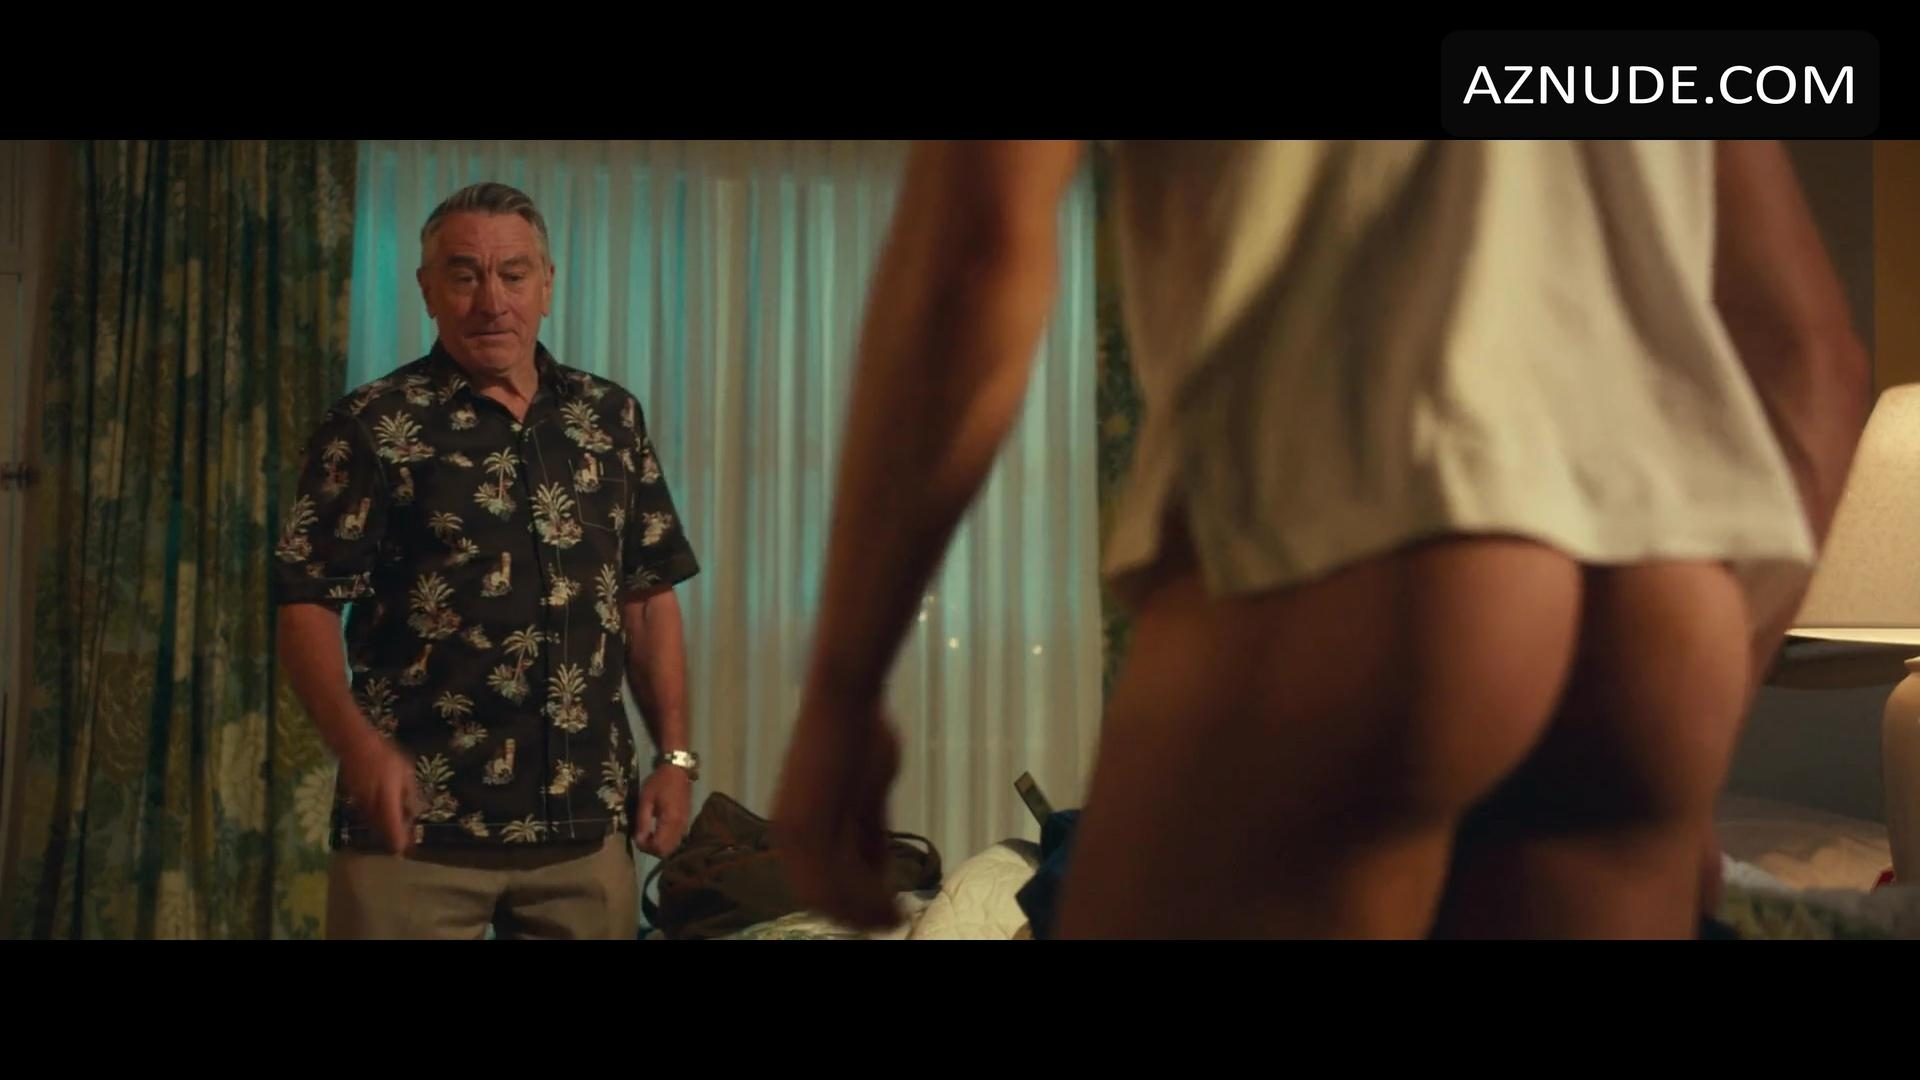 Dirty Grandpa Nude Scenes - Aznude Men-9820